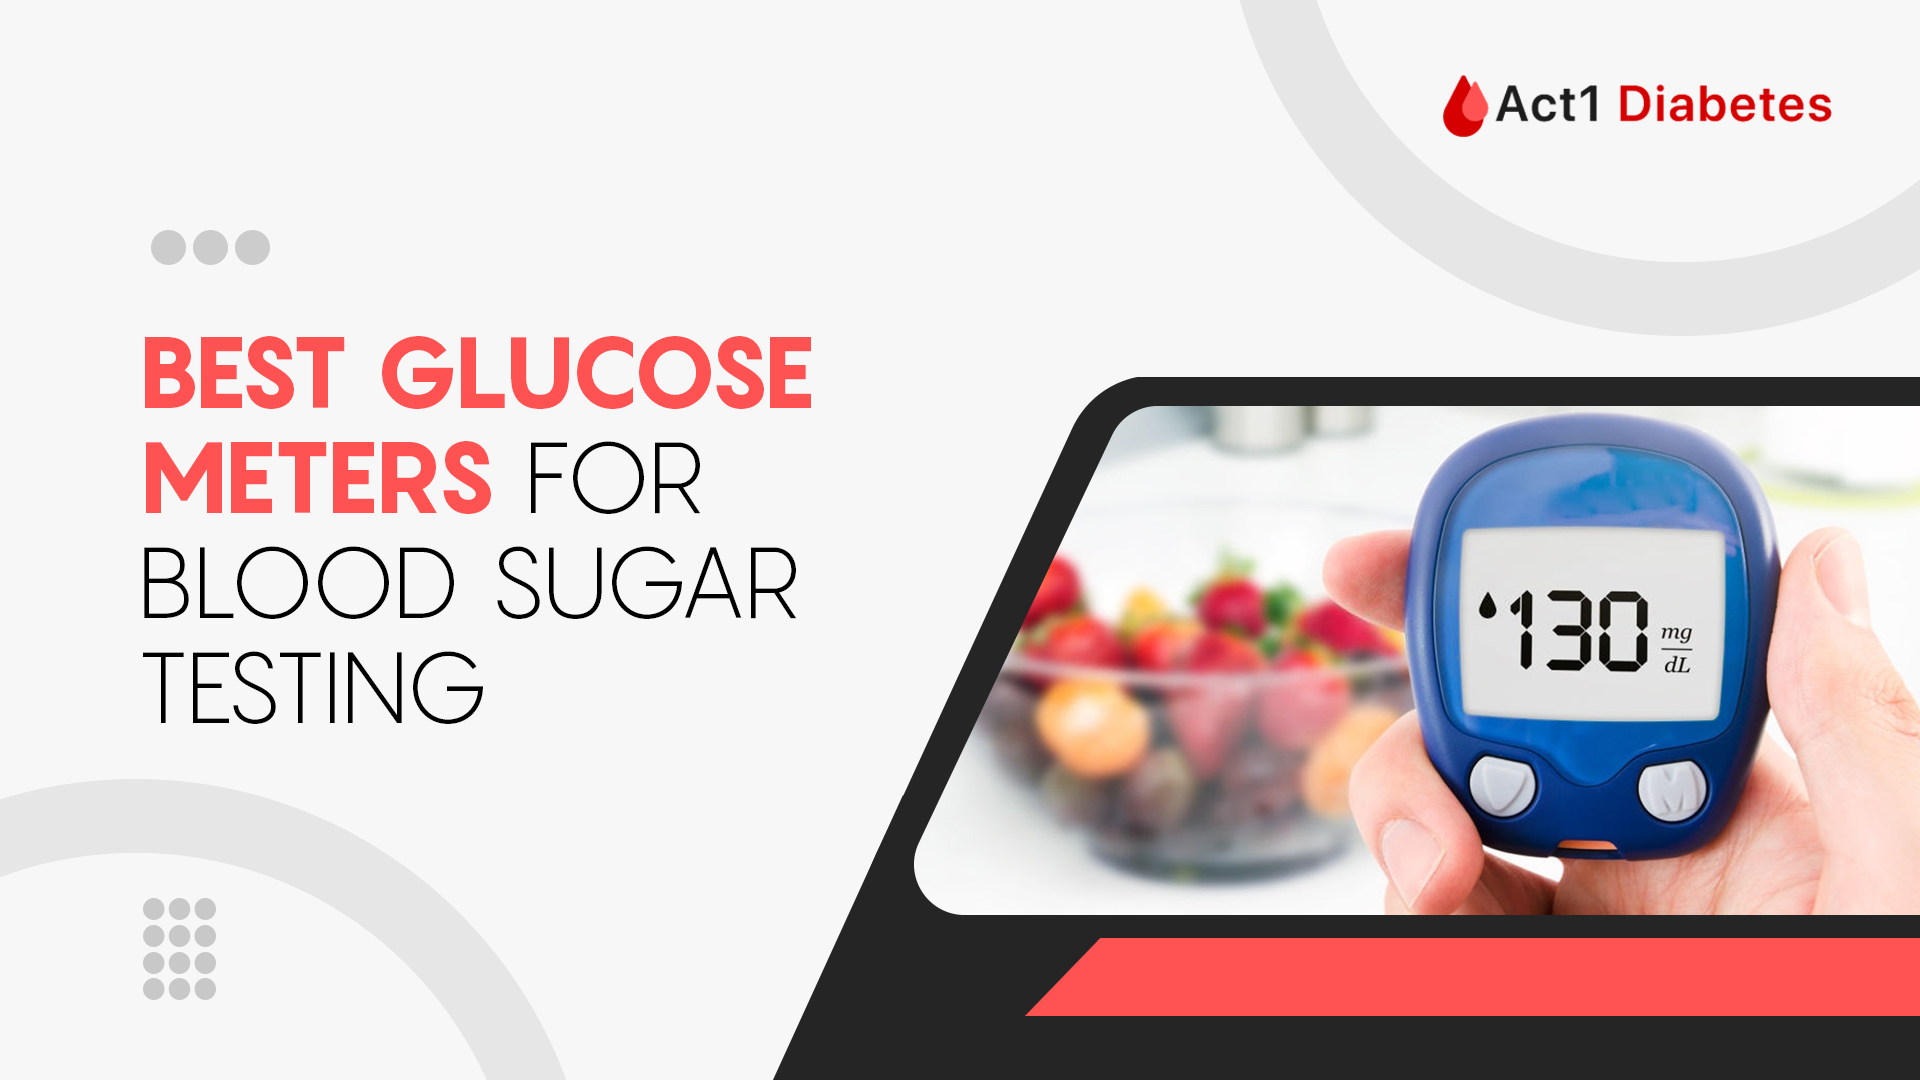 19 Best Glucose Meters For Blood Sugar Testing